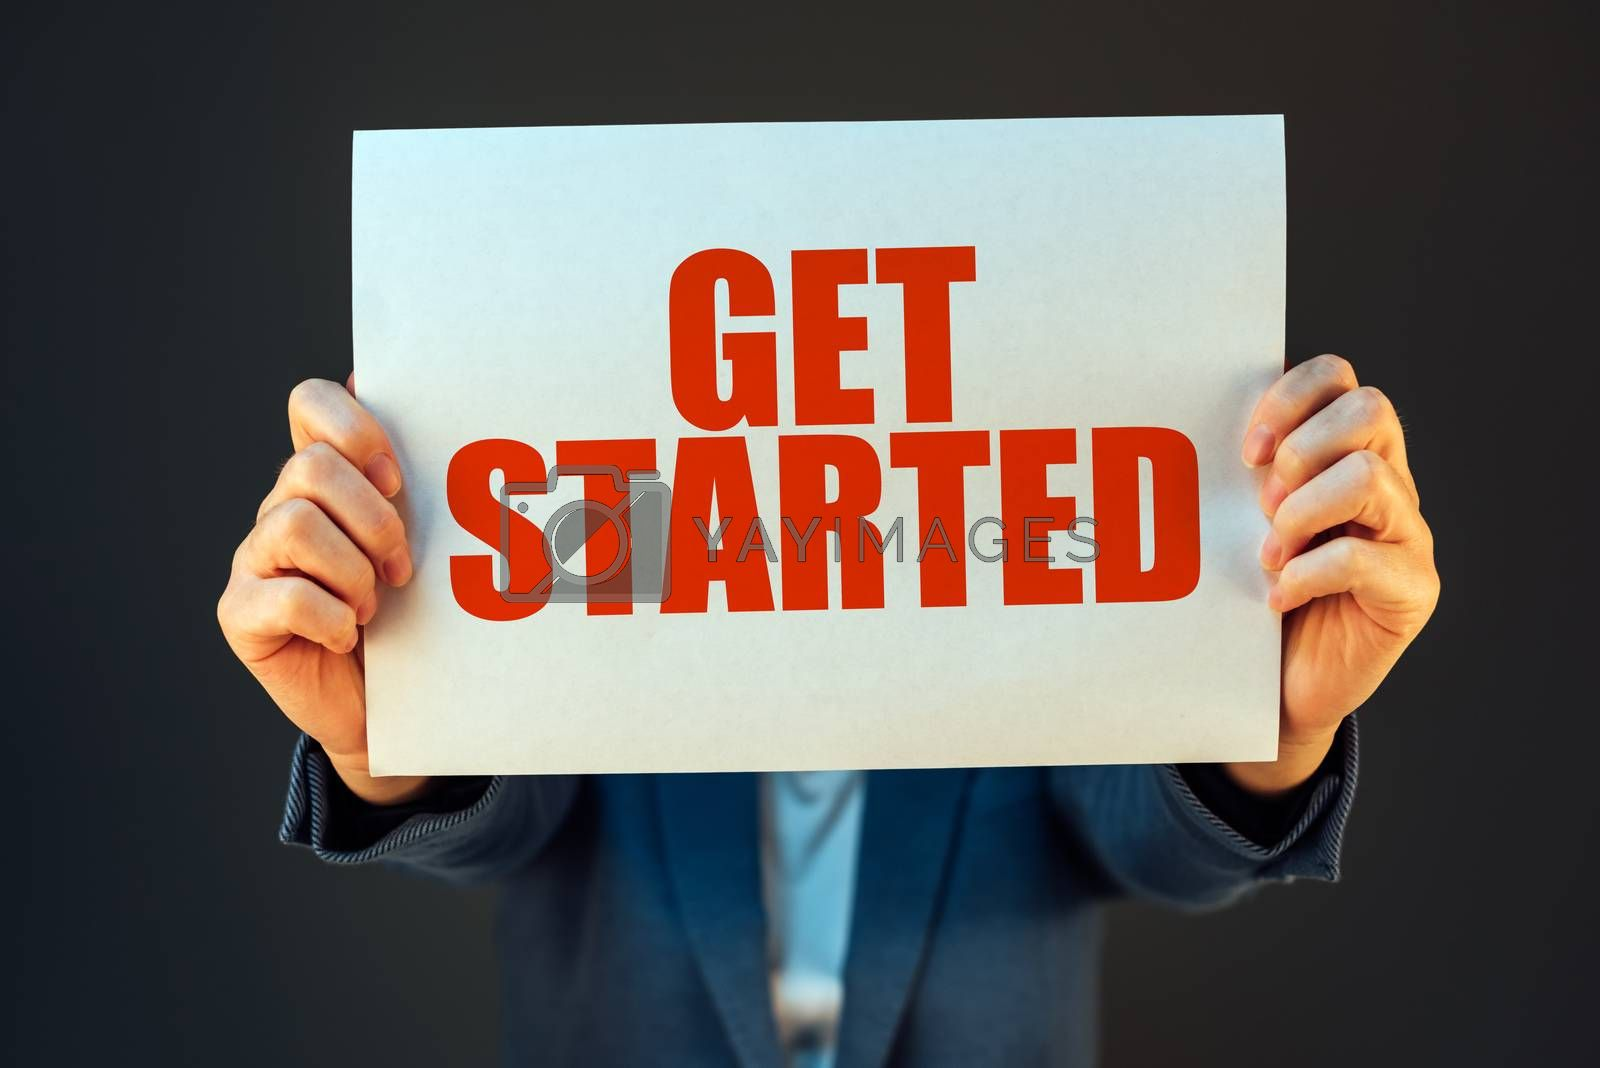 Get started business motivational message held by businesswoman, company start up concept